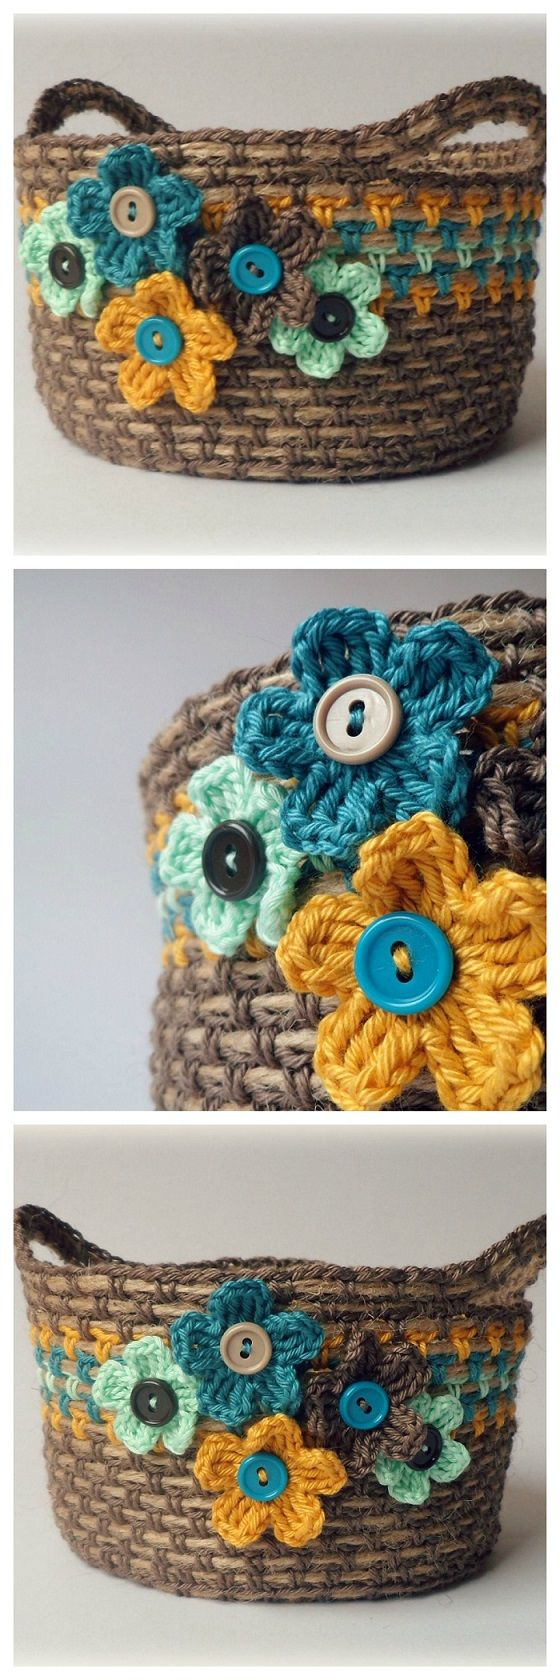 crochet basket with rope, flowers and buttons ༺✿ƬⱤღ http://www.pinterest.com/teretegui/✿༻